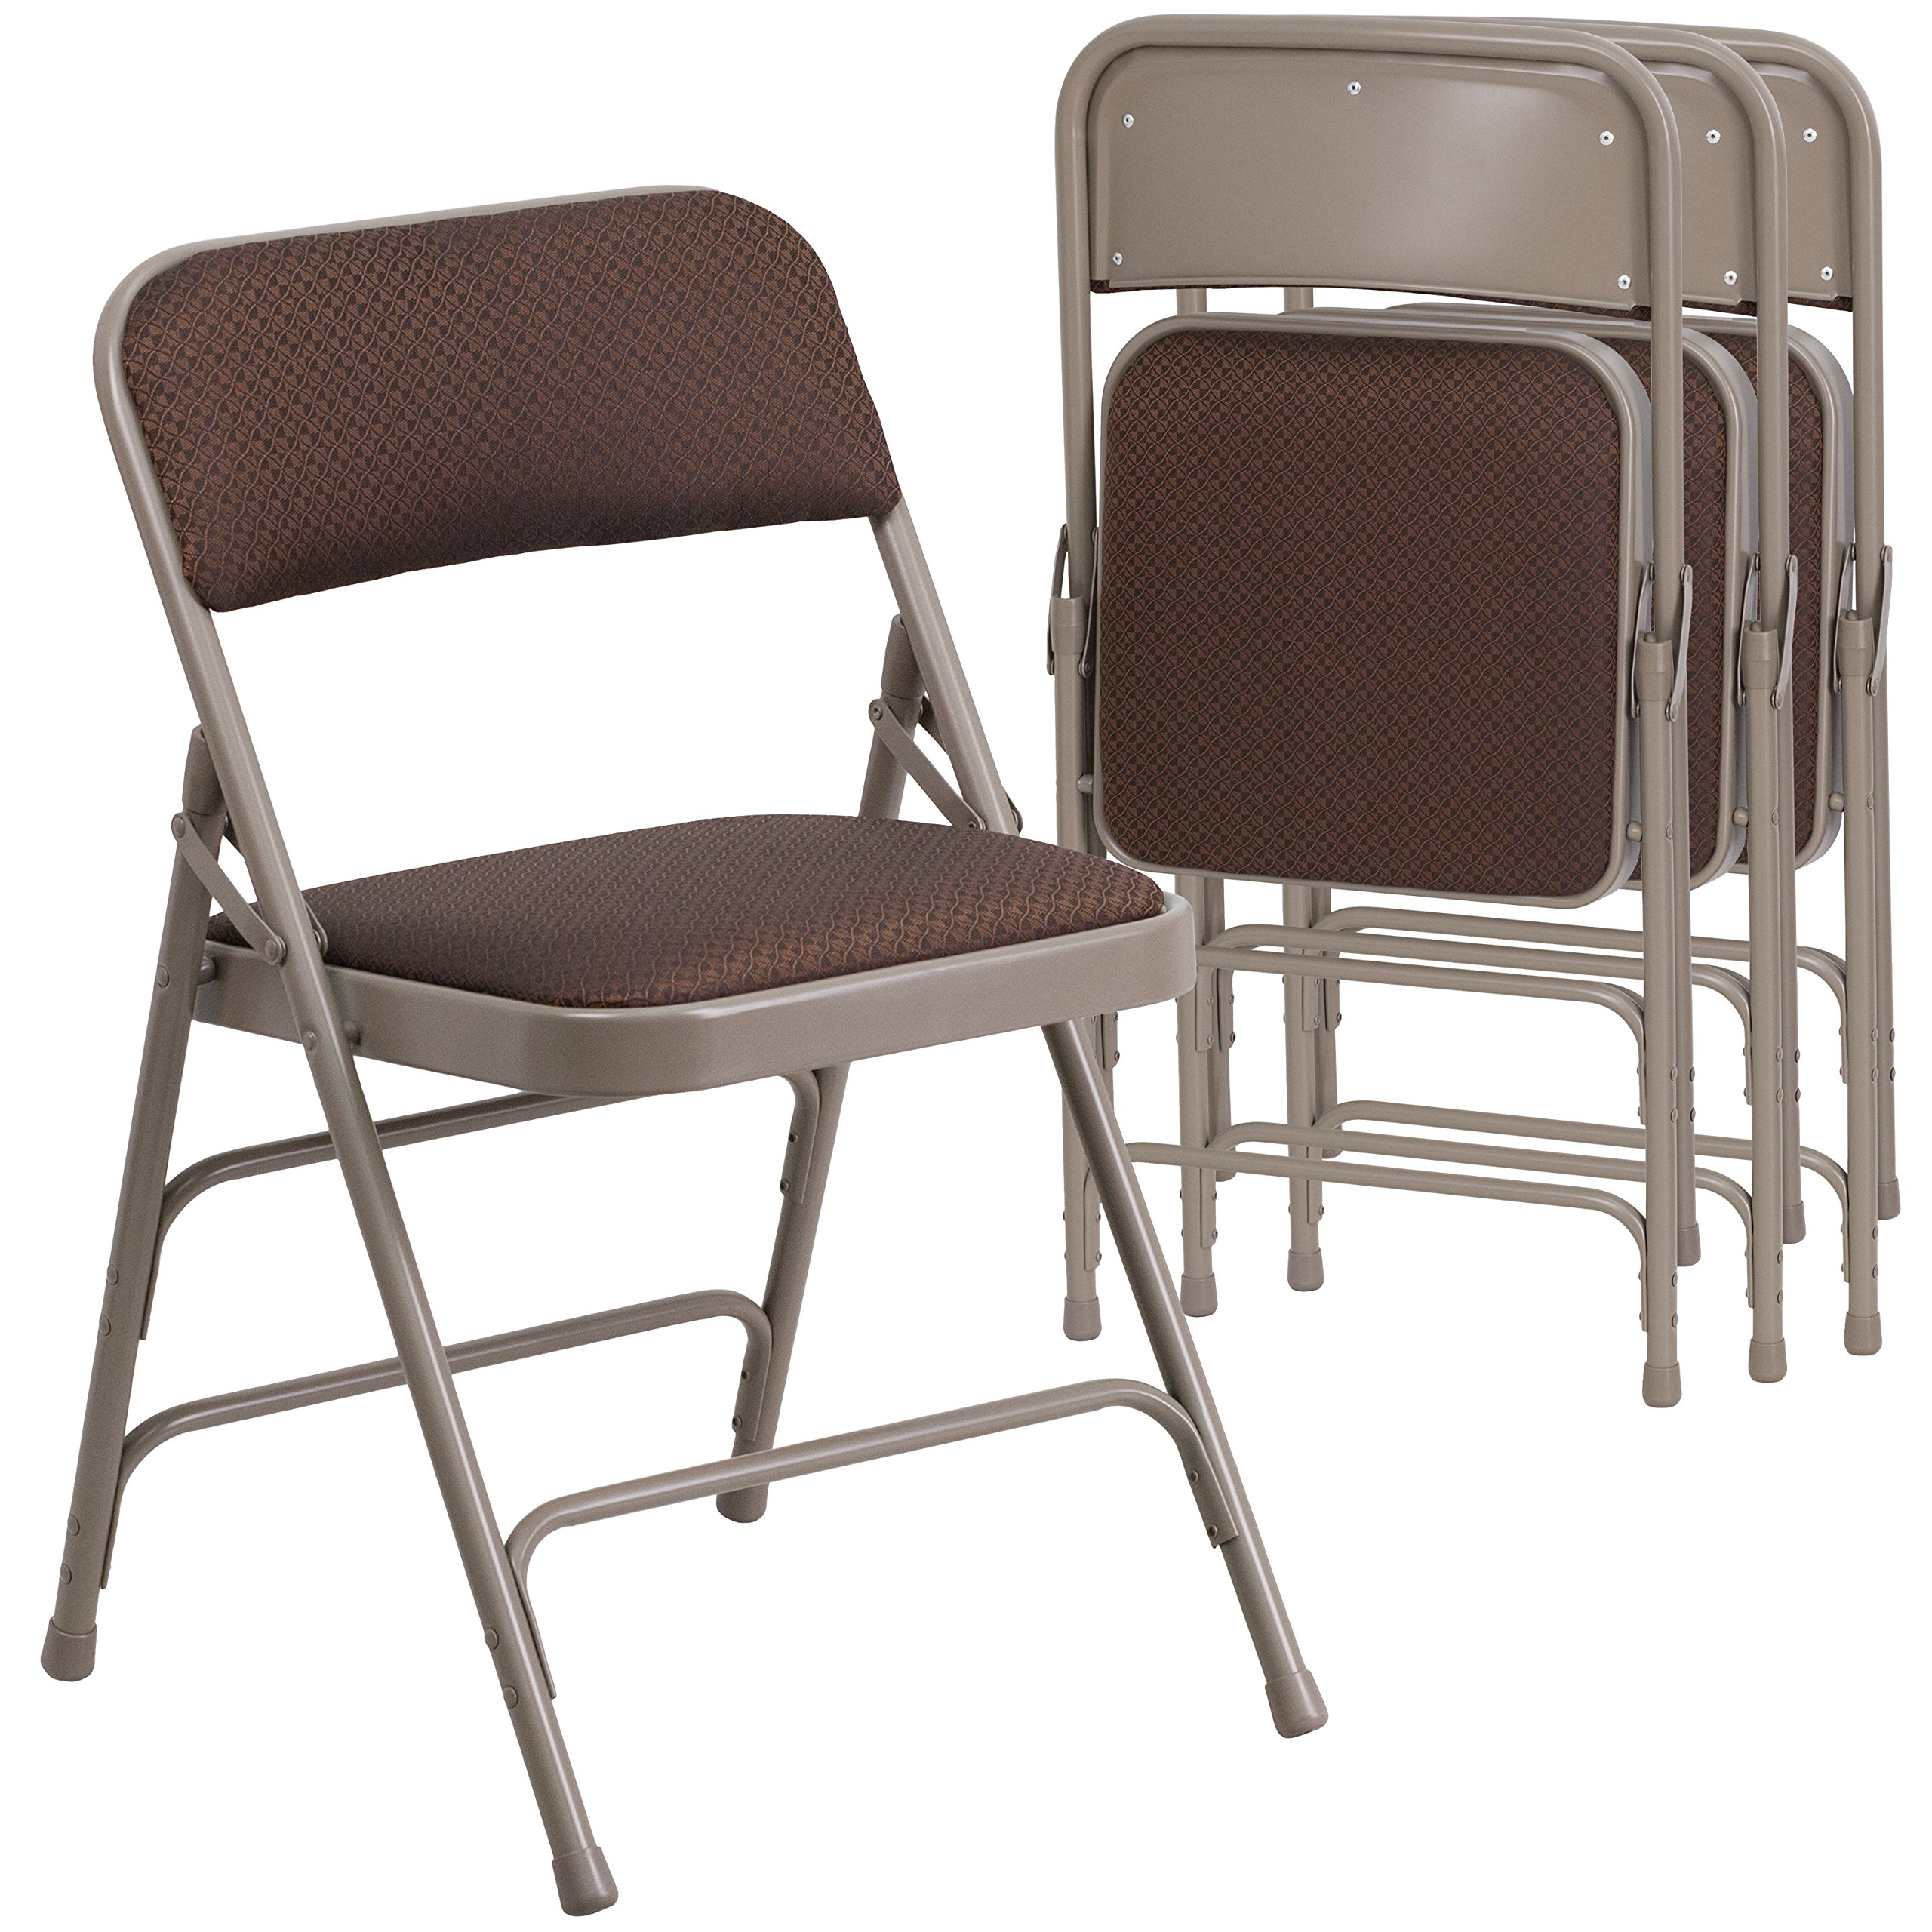 Flash Furniture 4 Pk. HERCULES Series Curved Triple Braced & Double Hinged Brown Patterned Fabric Metal Folding Chair